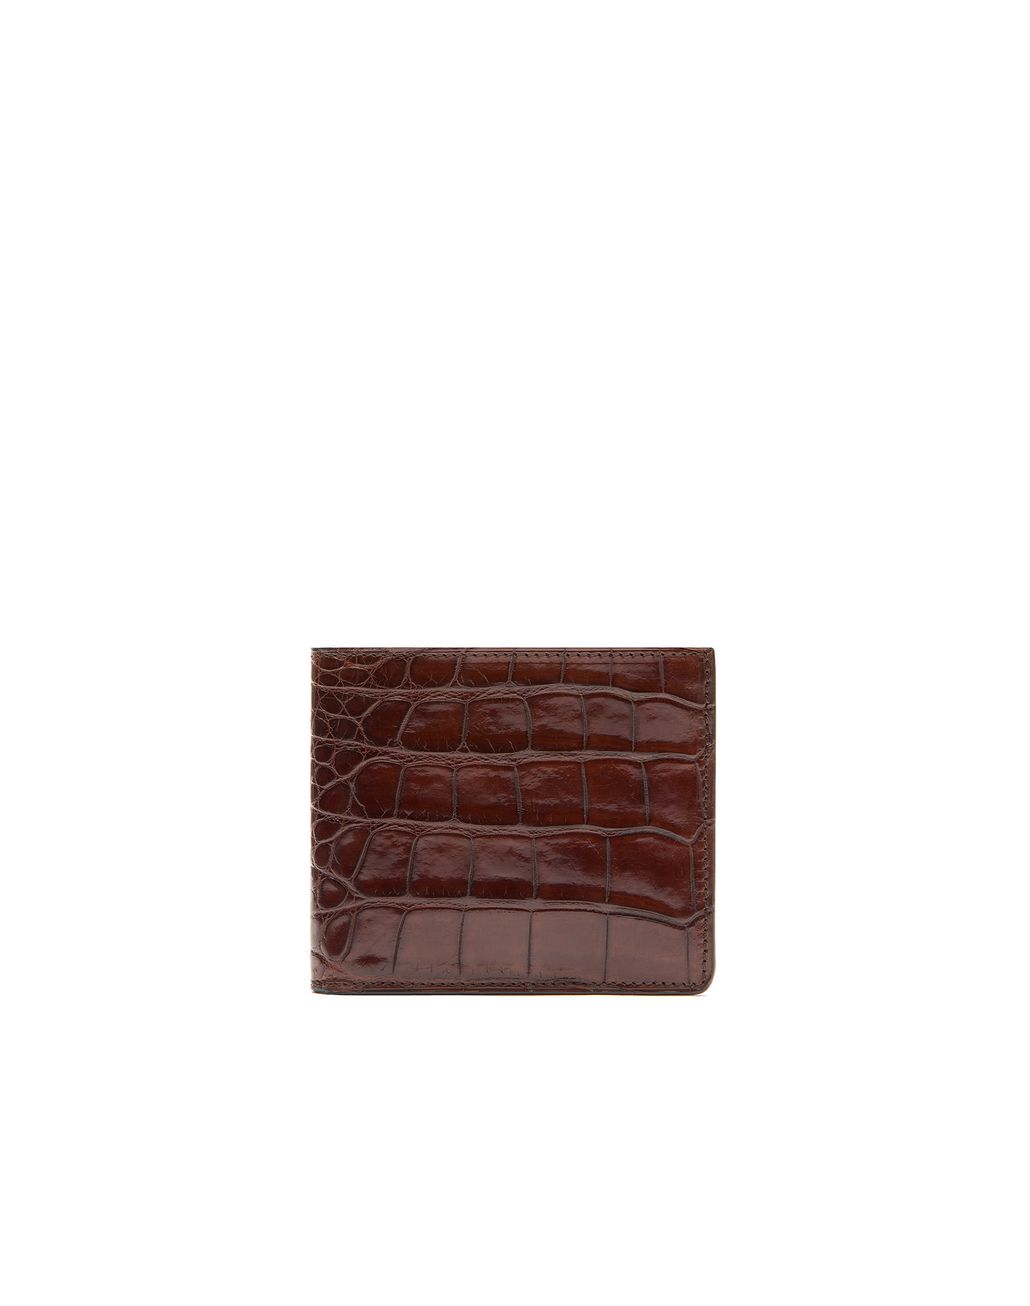 BRIONI Cognac Alligator Slim Wallet Leather Goods Man f